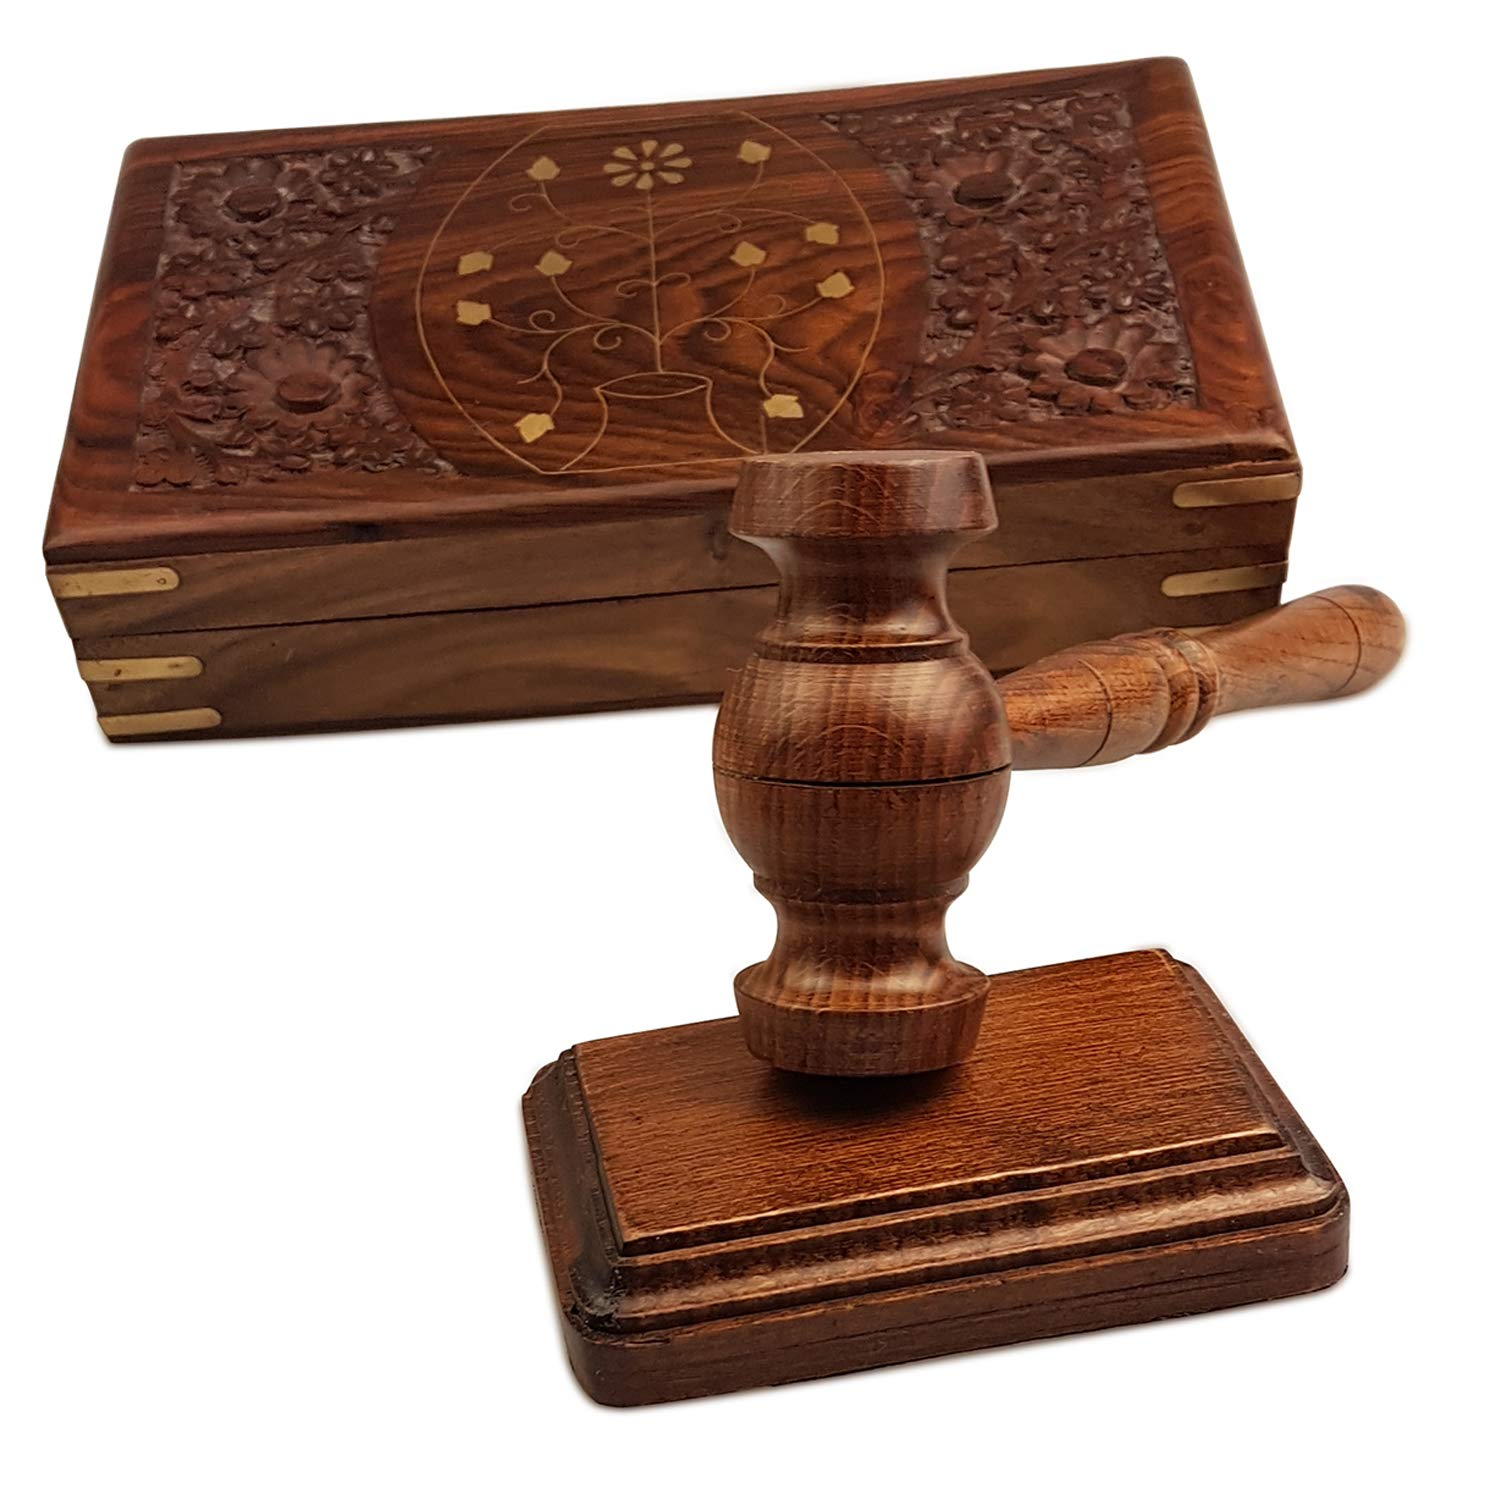 Special Hand Carving Work Wood Gavel Boxed Set - Rustic Gavel Gift Box Set Walnut Wooden Used - in Box Gavel and Sound Round Block Set Perfect for Lawyer Student Judge Auction Sale Meeting Best Idea